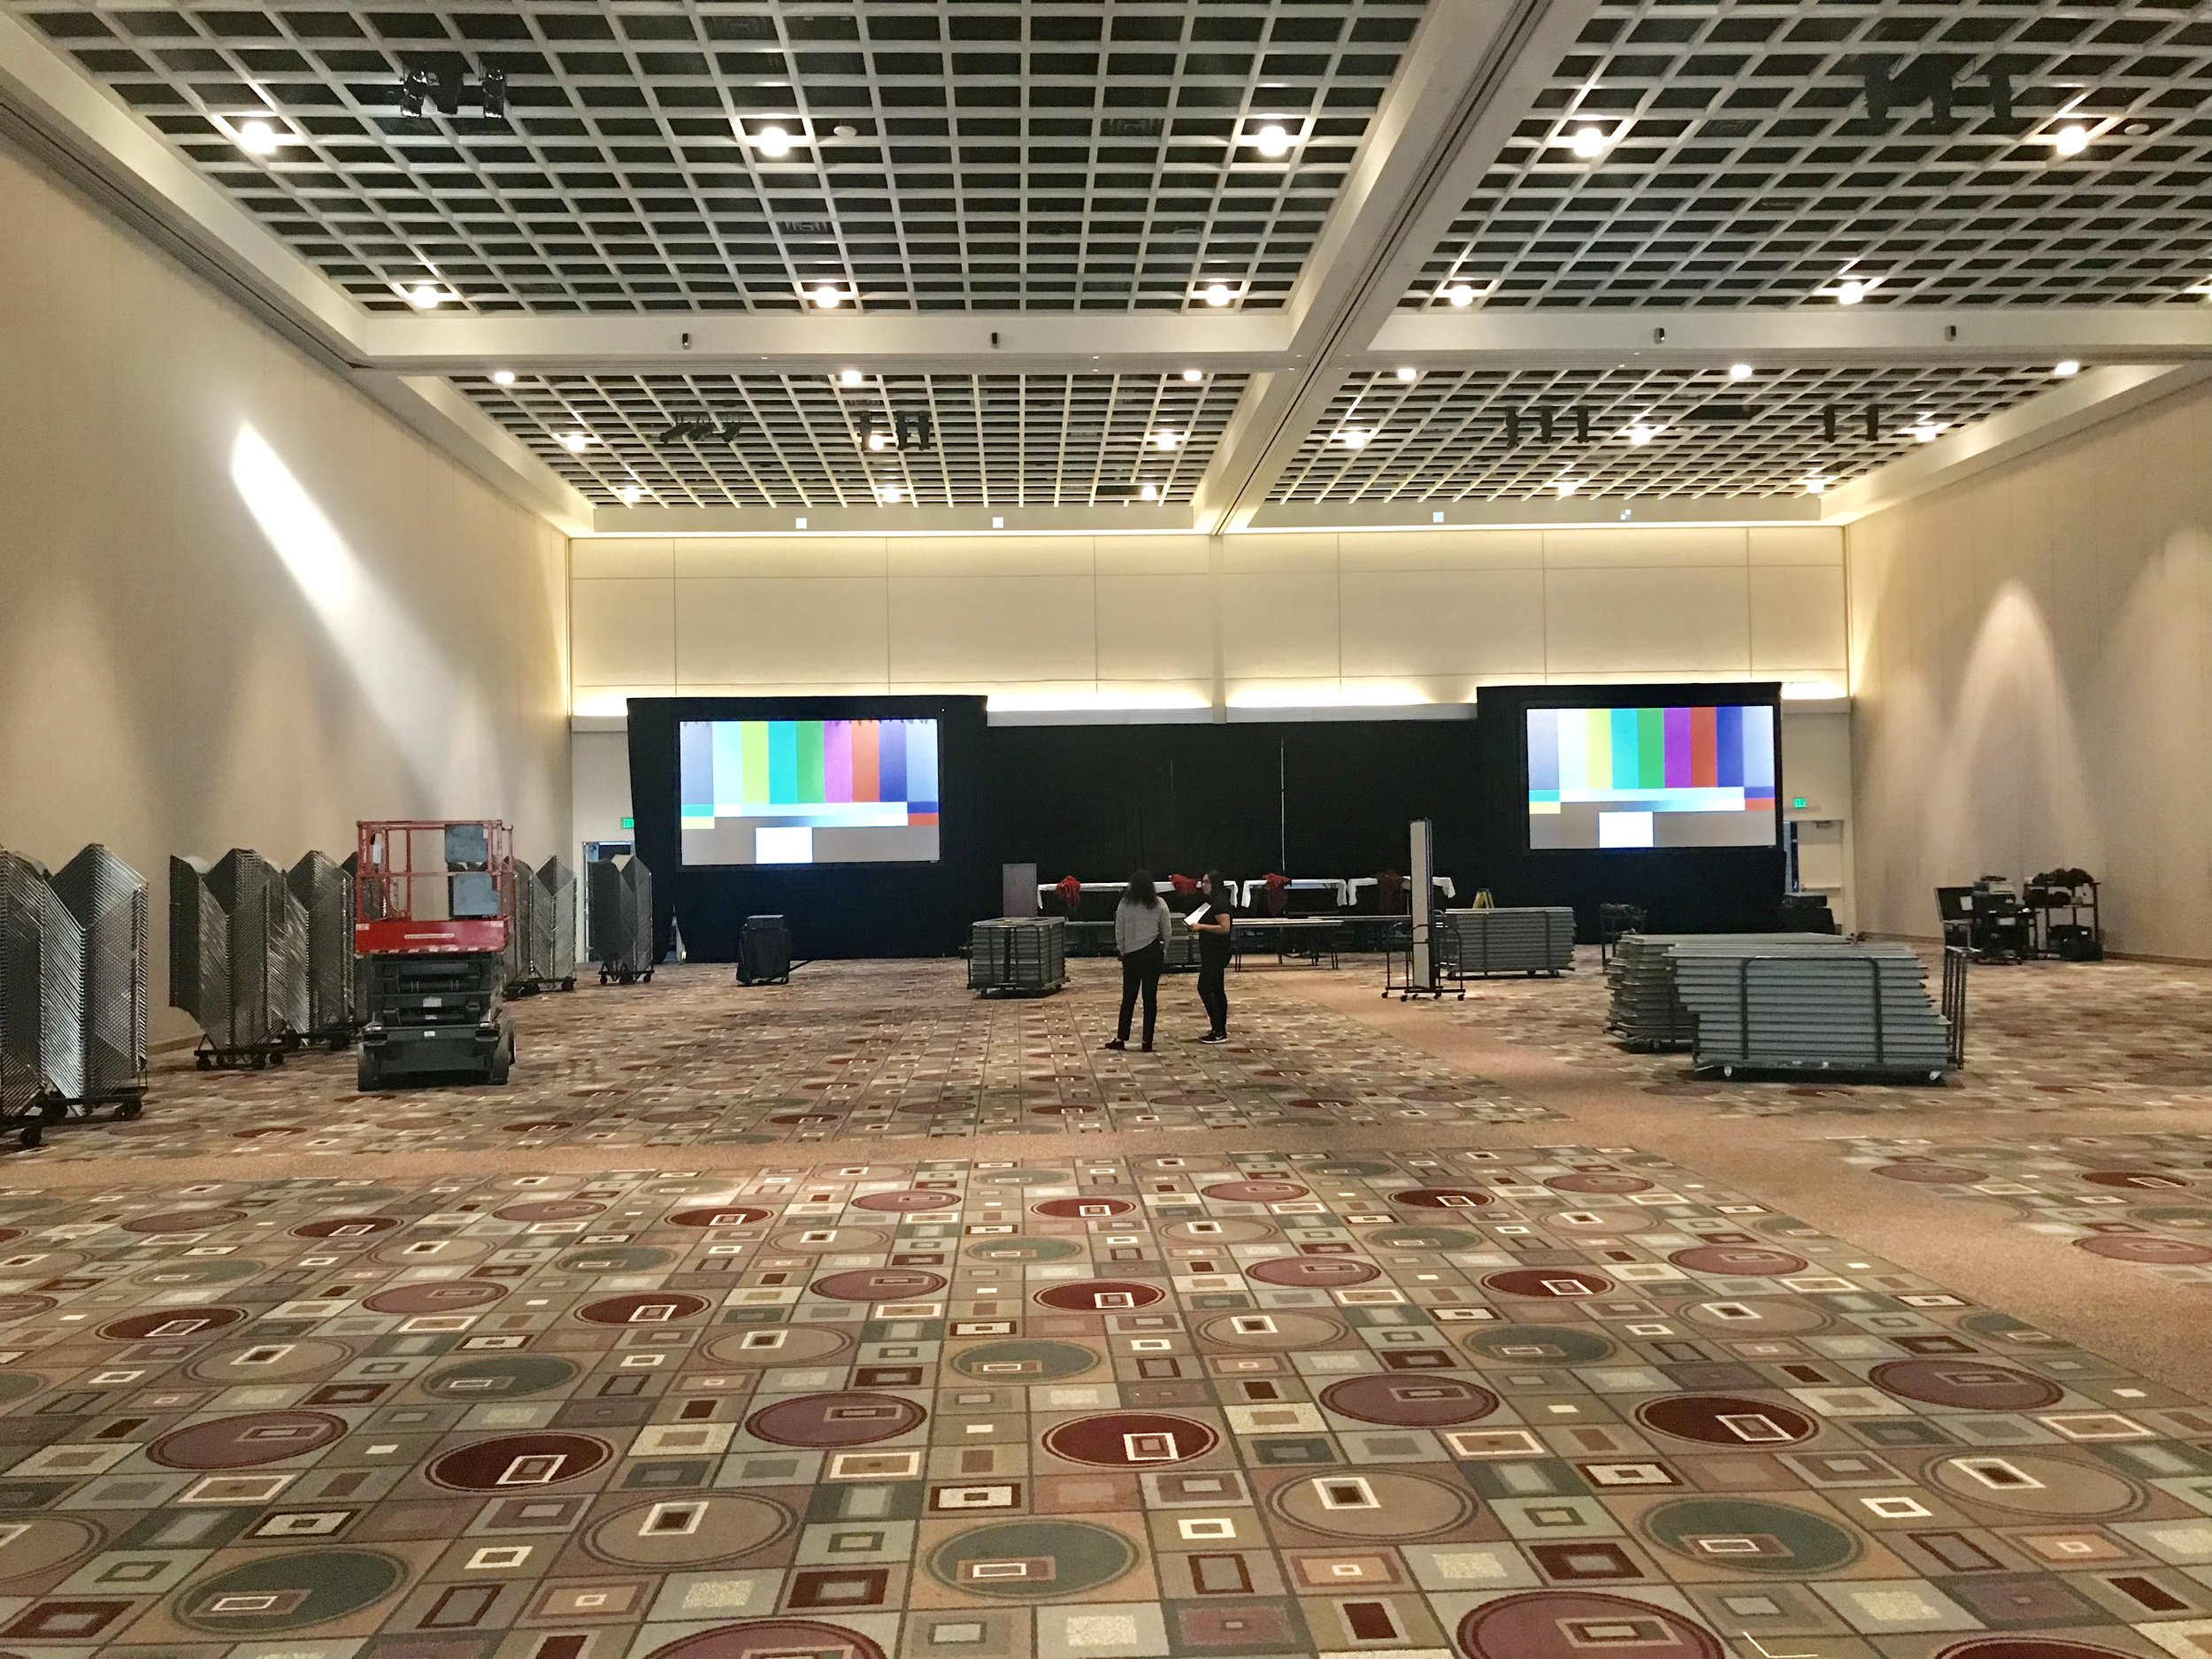 25,000 square foot Ballroom at Pasadena Convention Center.